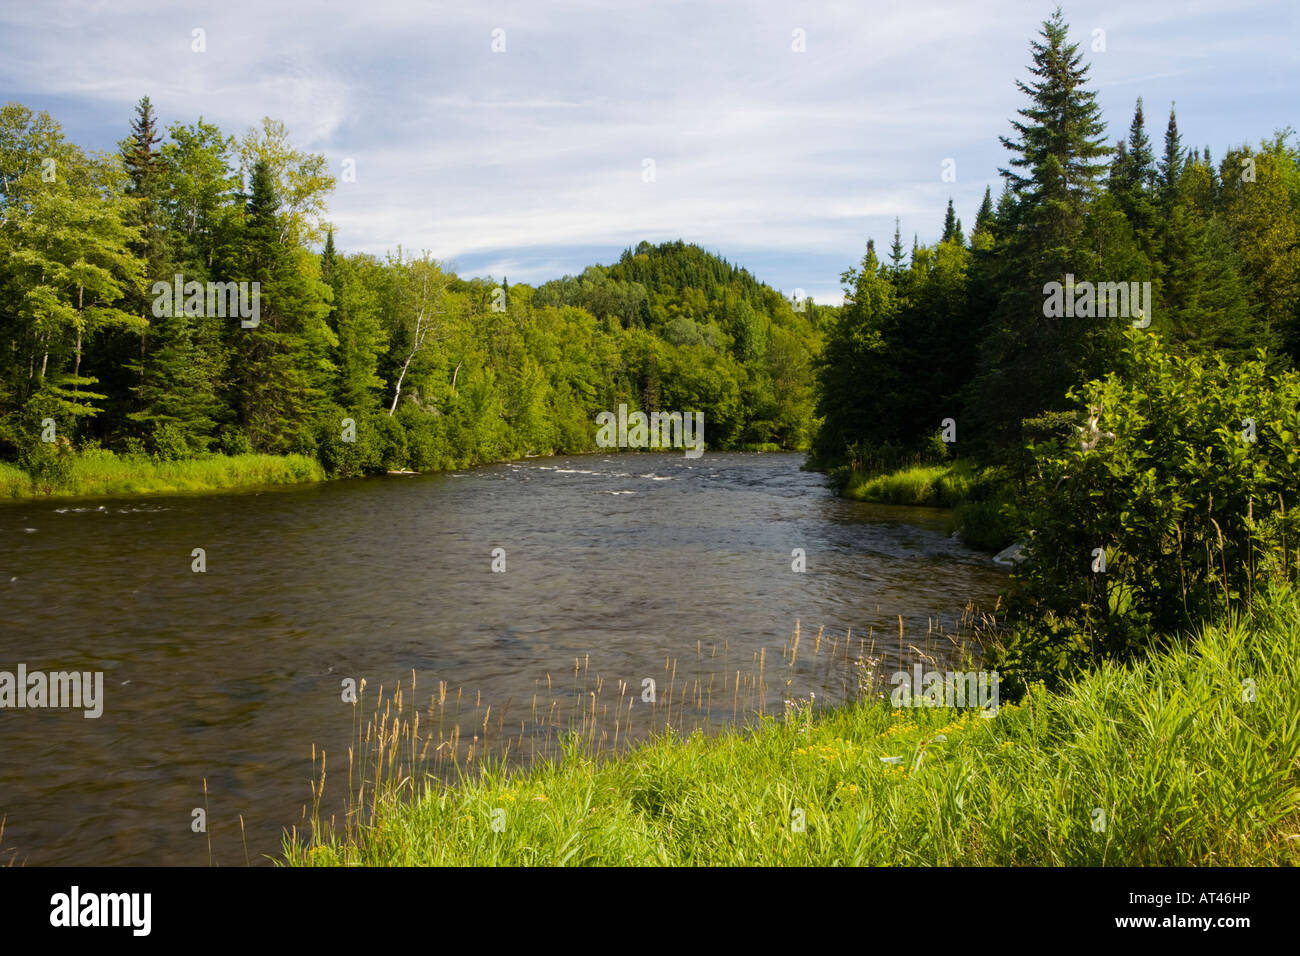 The Connecticut River in Pittsburg, New Hampshire. - Stock Image